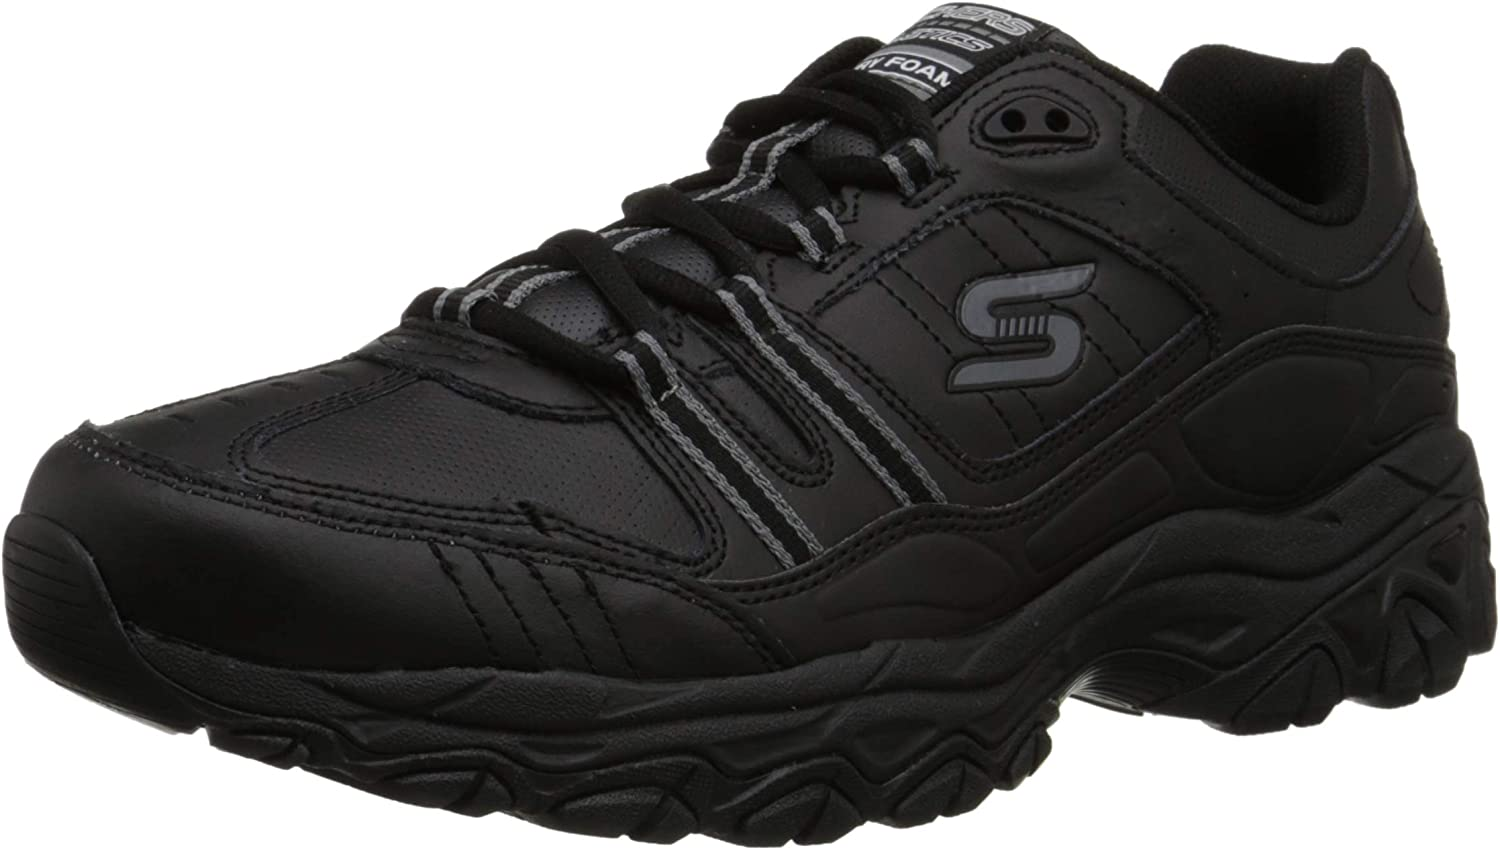 Skechers Sport Men's Afterburn Memory Foam Strike On Training Shoes